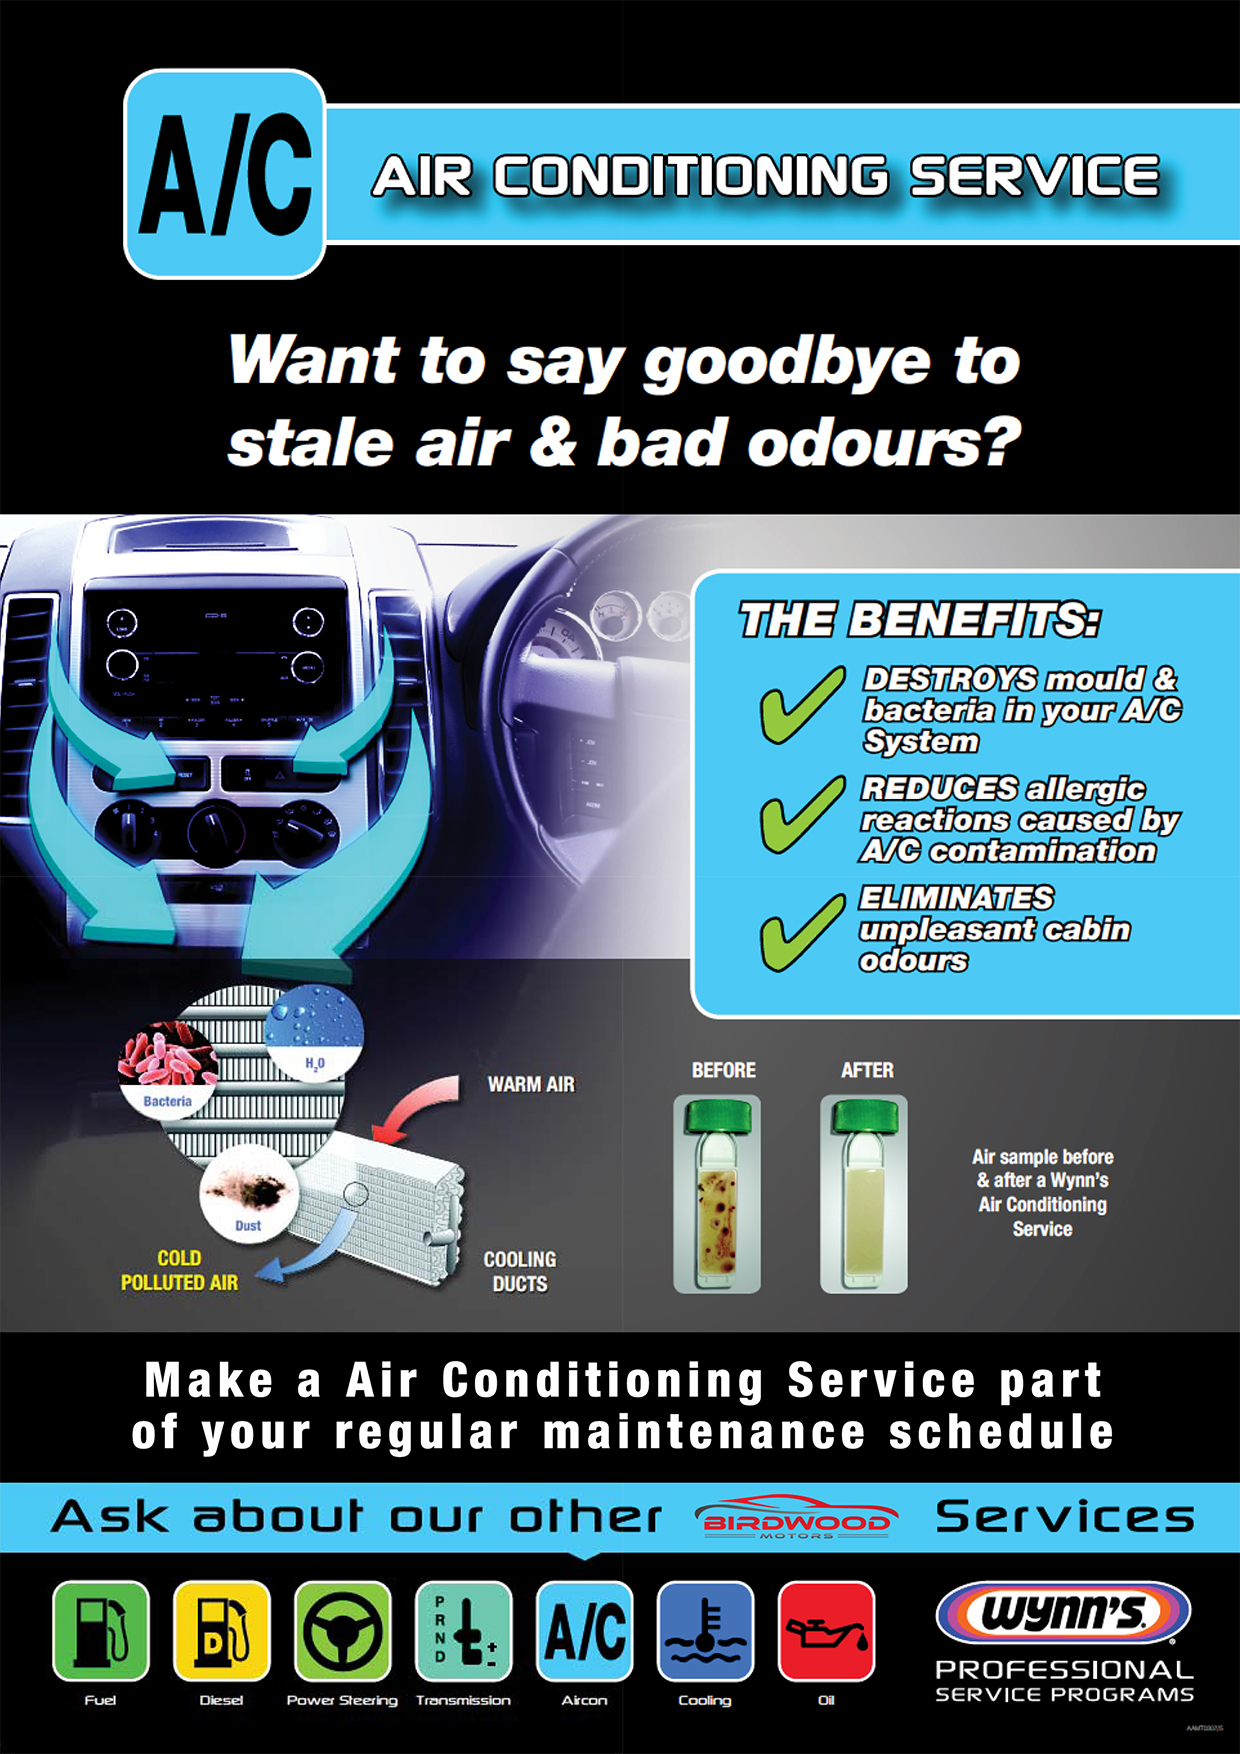 Air Conditioning Service Poster (Birdwood)